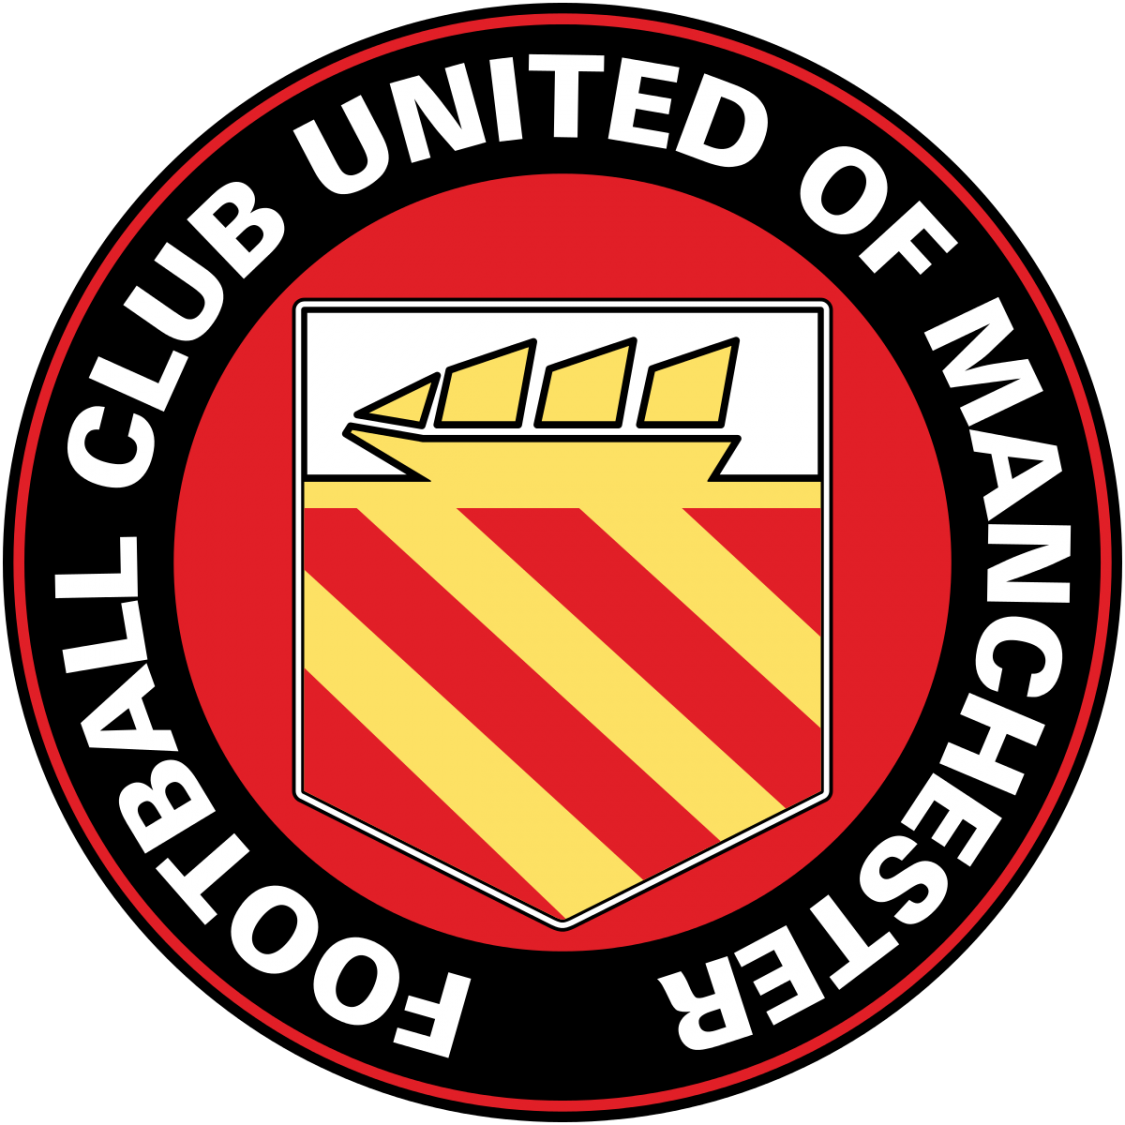 1200px-FC_United_of_Manchester_crest_svg.thumb.png.6e500854167158be8e4335ff0103a9a1.png